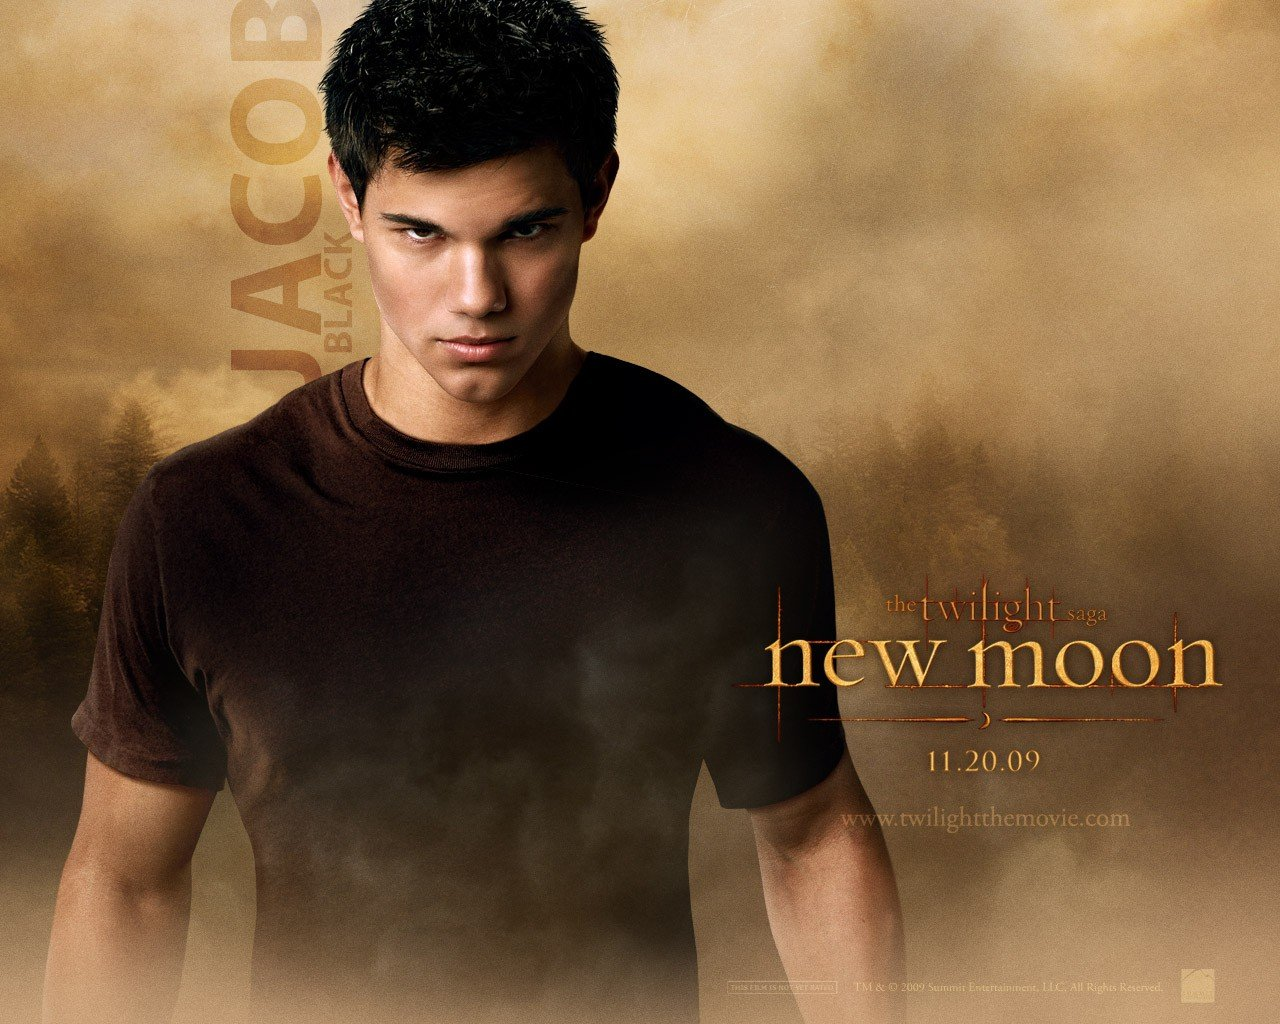 Un wallpaper ufficiale dedicato al personaggio di Jacob Black (Taylor Lautner) per il film Twilight Saga: New Moon